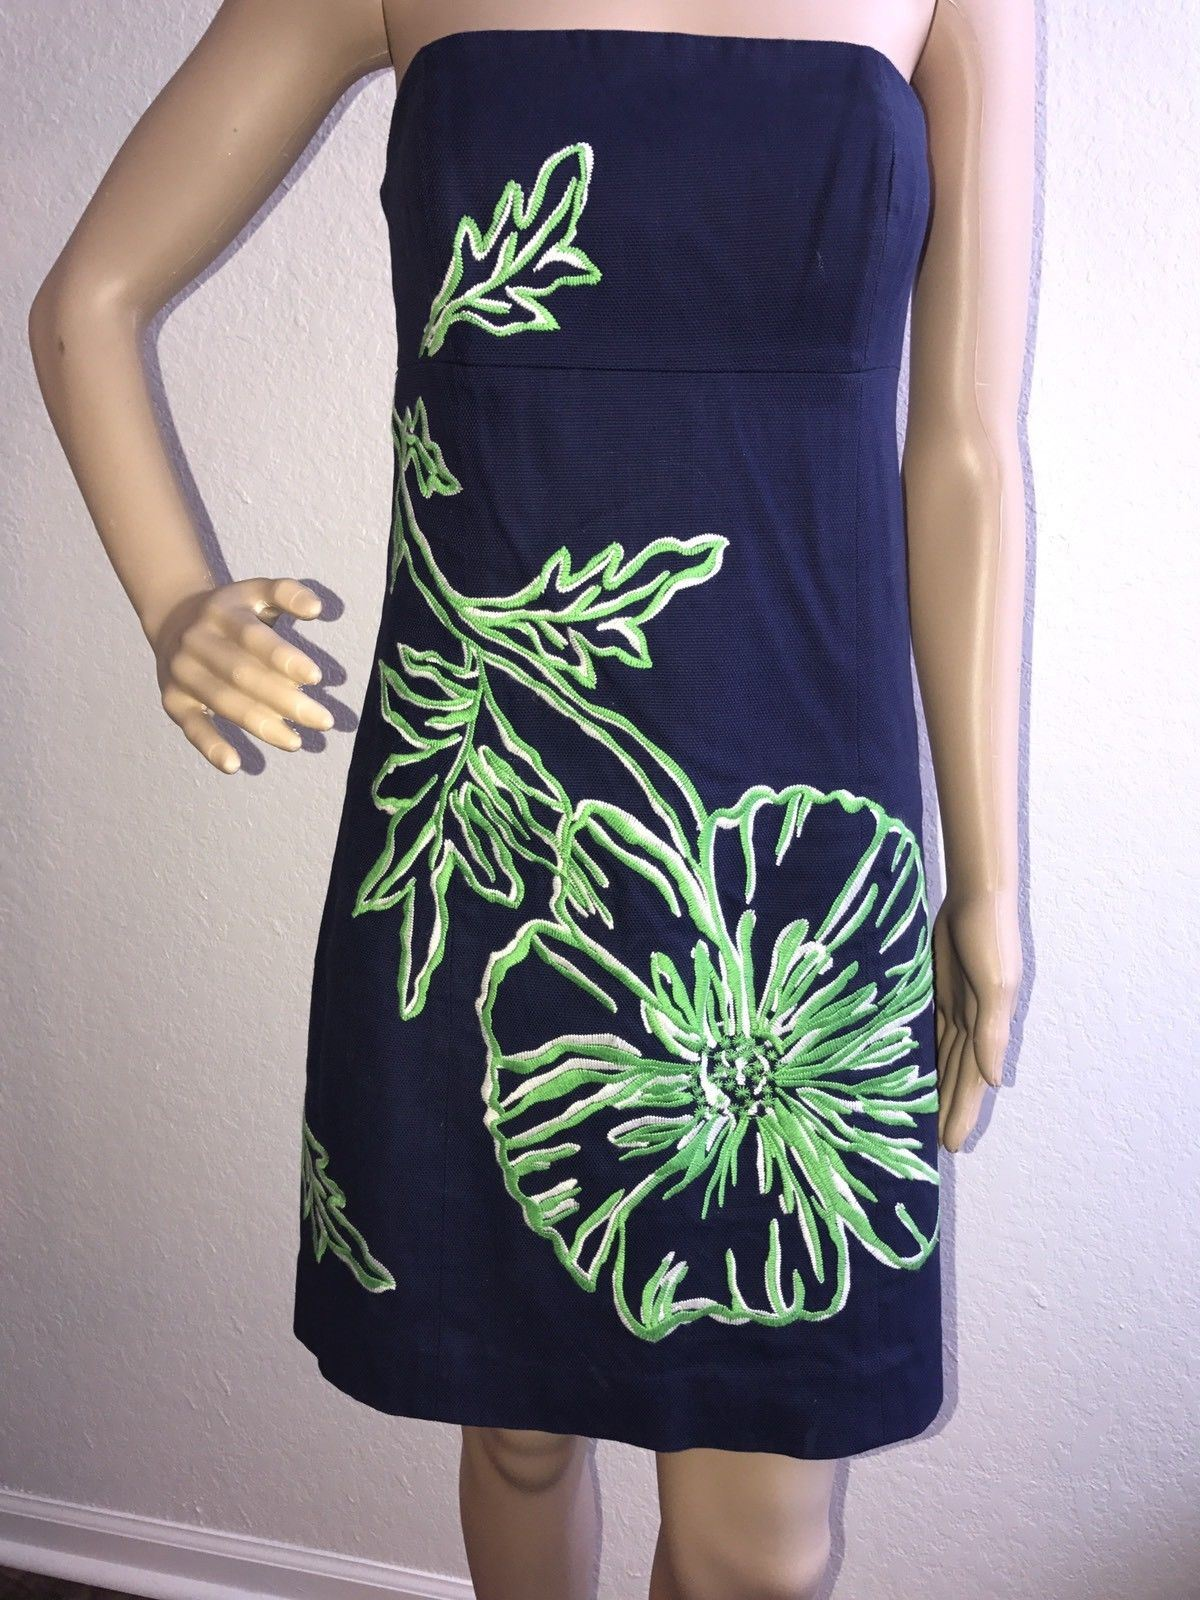 Lilly Pulitzer Blue with Green Flowers dress Size 2